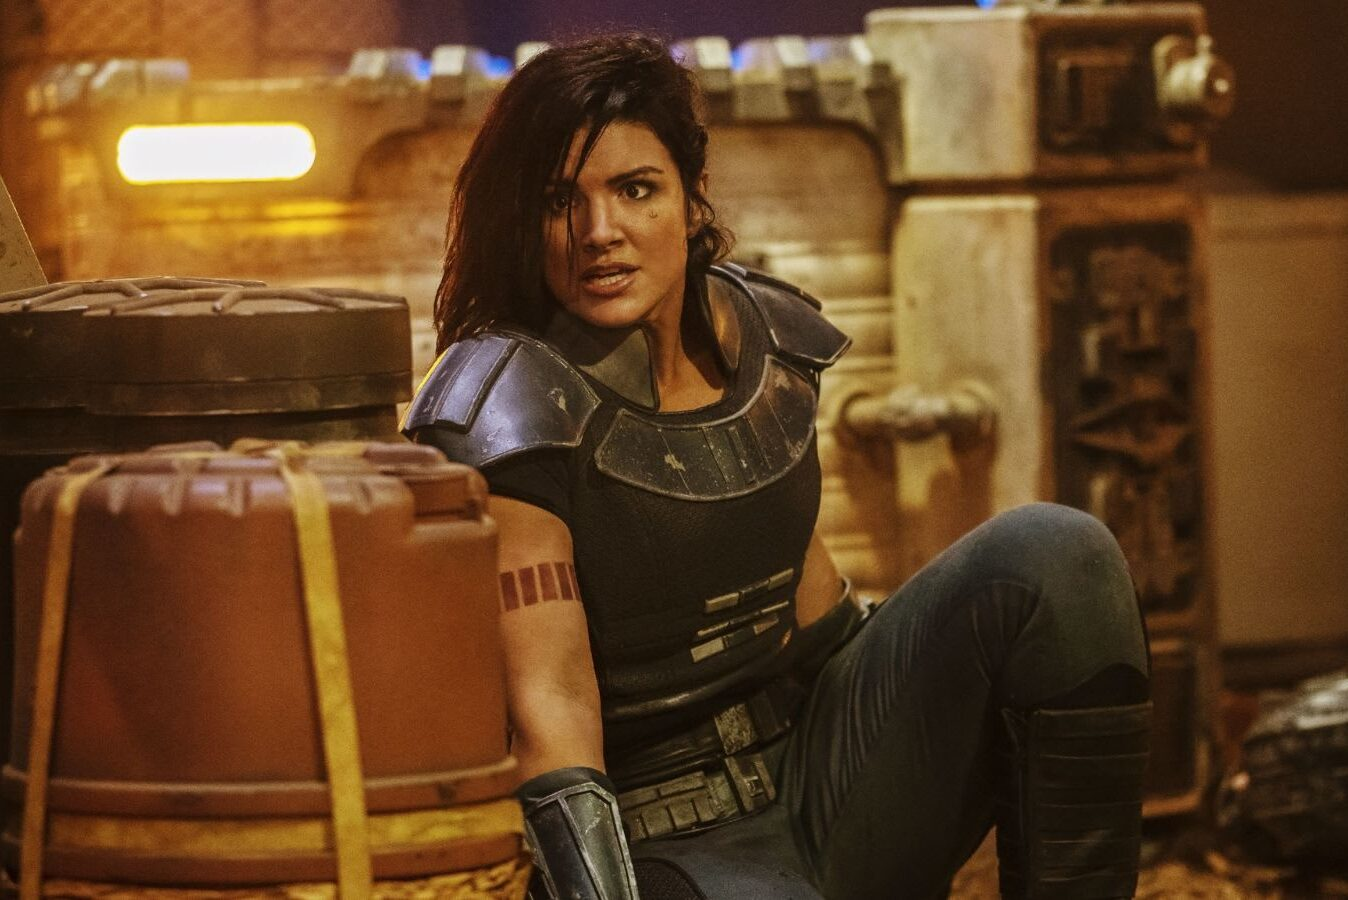 Gina Carano May Actually Be Fired From The Mandalorian For Her Views